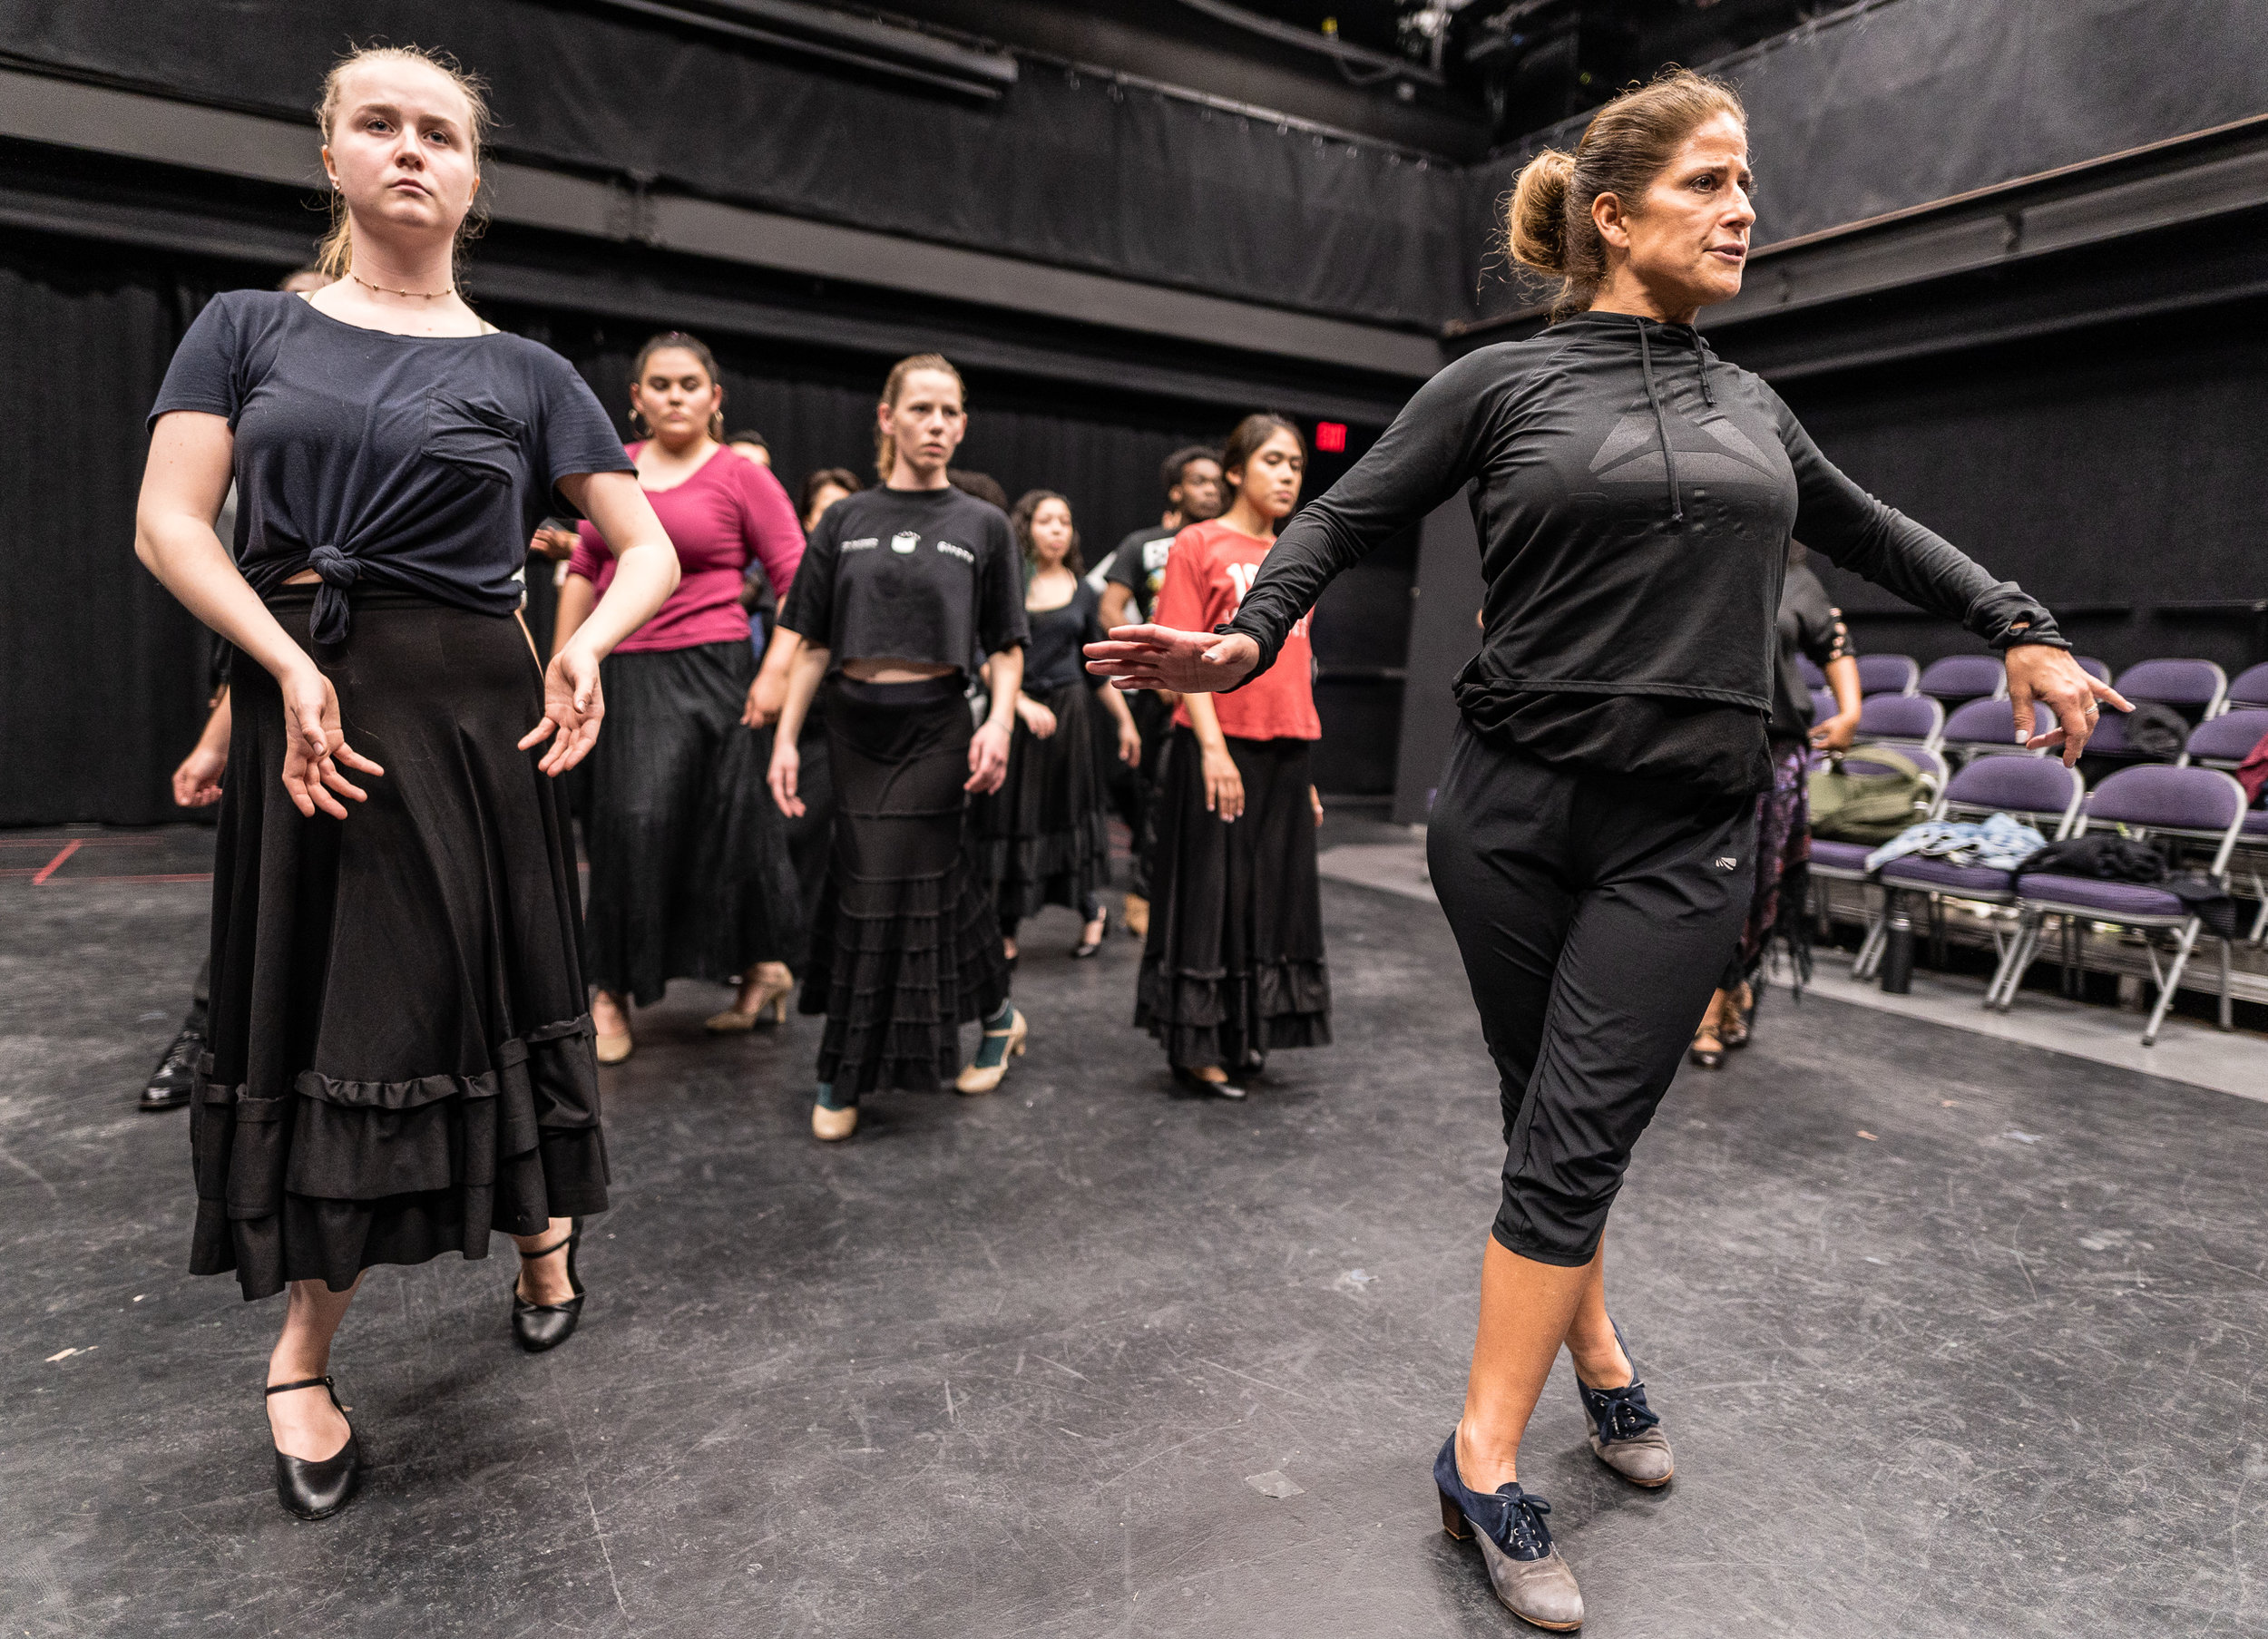 Flamenco Macbeth co-choreographer and SMC Theatre & Dance faculty member Cihtli Ocampo (right) teaches flamenco choreography to Josefin Östevik (left) and the cast of SMC's upcoming production of Flamenco Macbeth at the SMC Studio Stage, the space where Flamenco Macbeth will premiere in a month, on Thursday, March 21, 2019. Flamenco Macbeth is an adaptation of Shakespeare's Macbeth by SMC Theatre Arts department chair Perviz Sawoski. The play will be performed at the SMC Studio Stage, a 100-seat thrust stage, from April 26 through May 5, 2019. (Glenn Zucman/The Corsair)